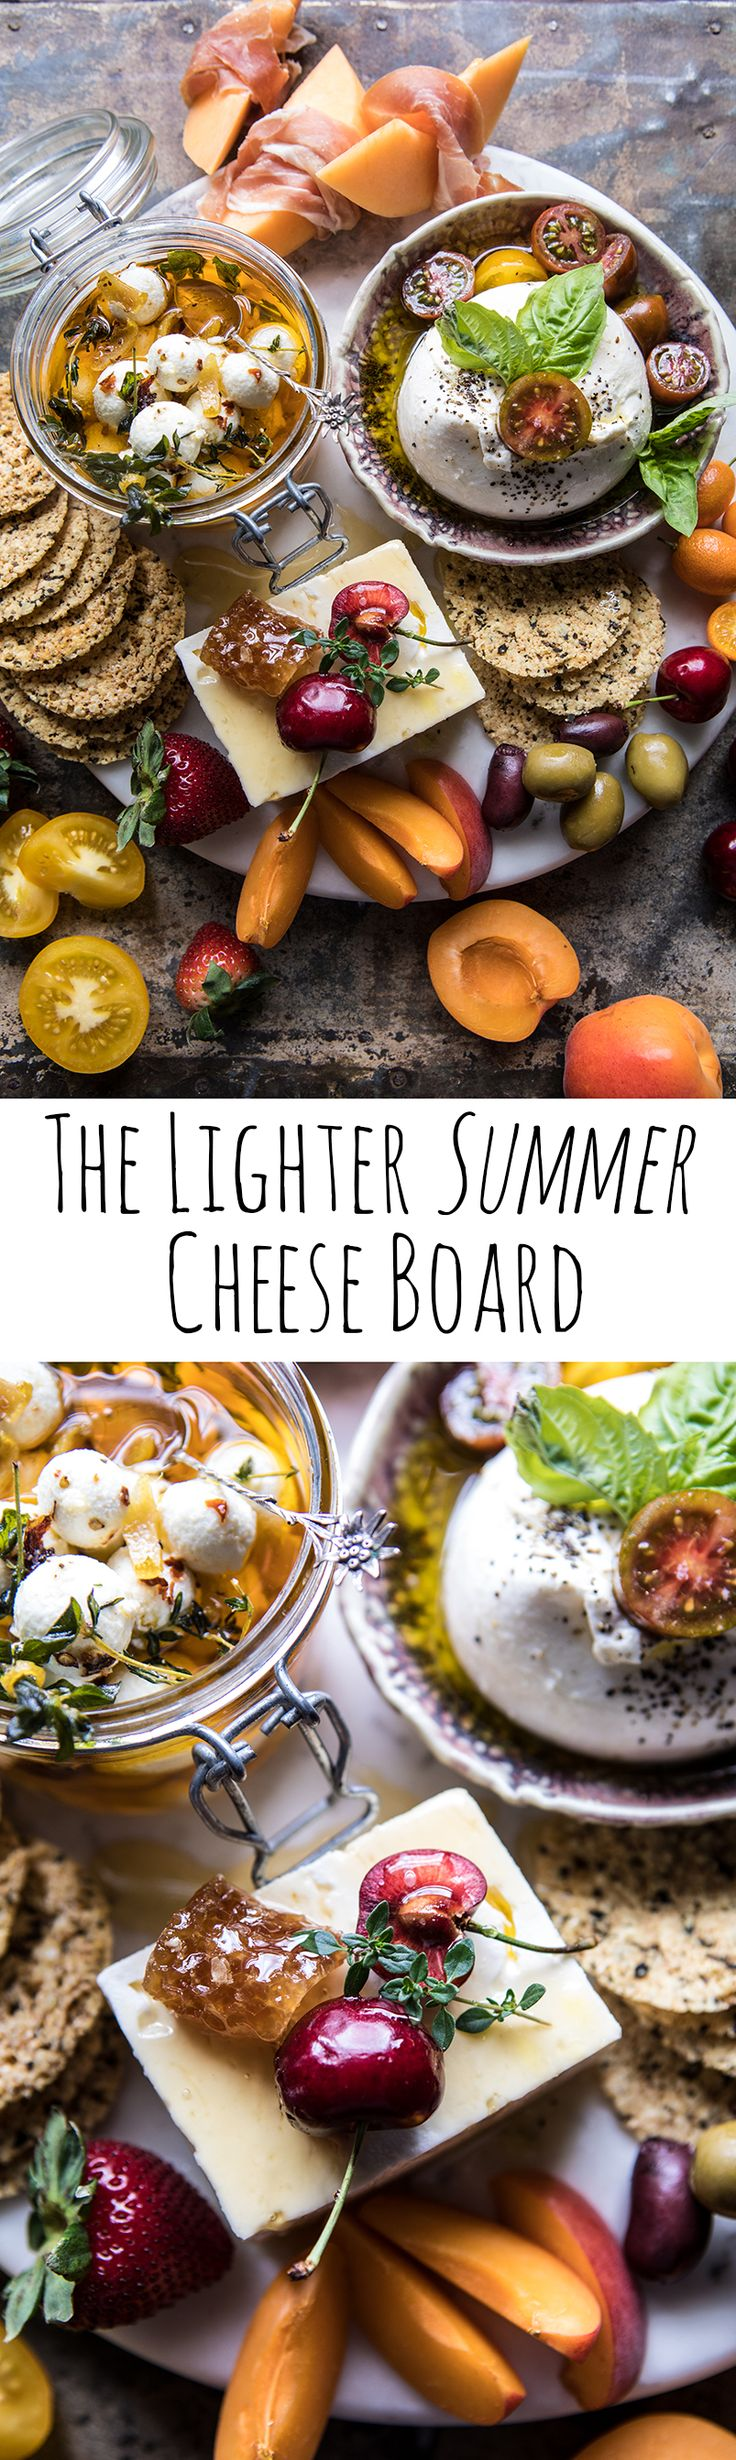 The Lighter Cheese Board | halfbakedharvest.com @hbharvest